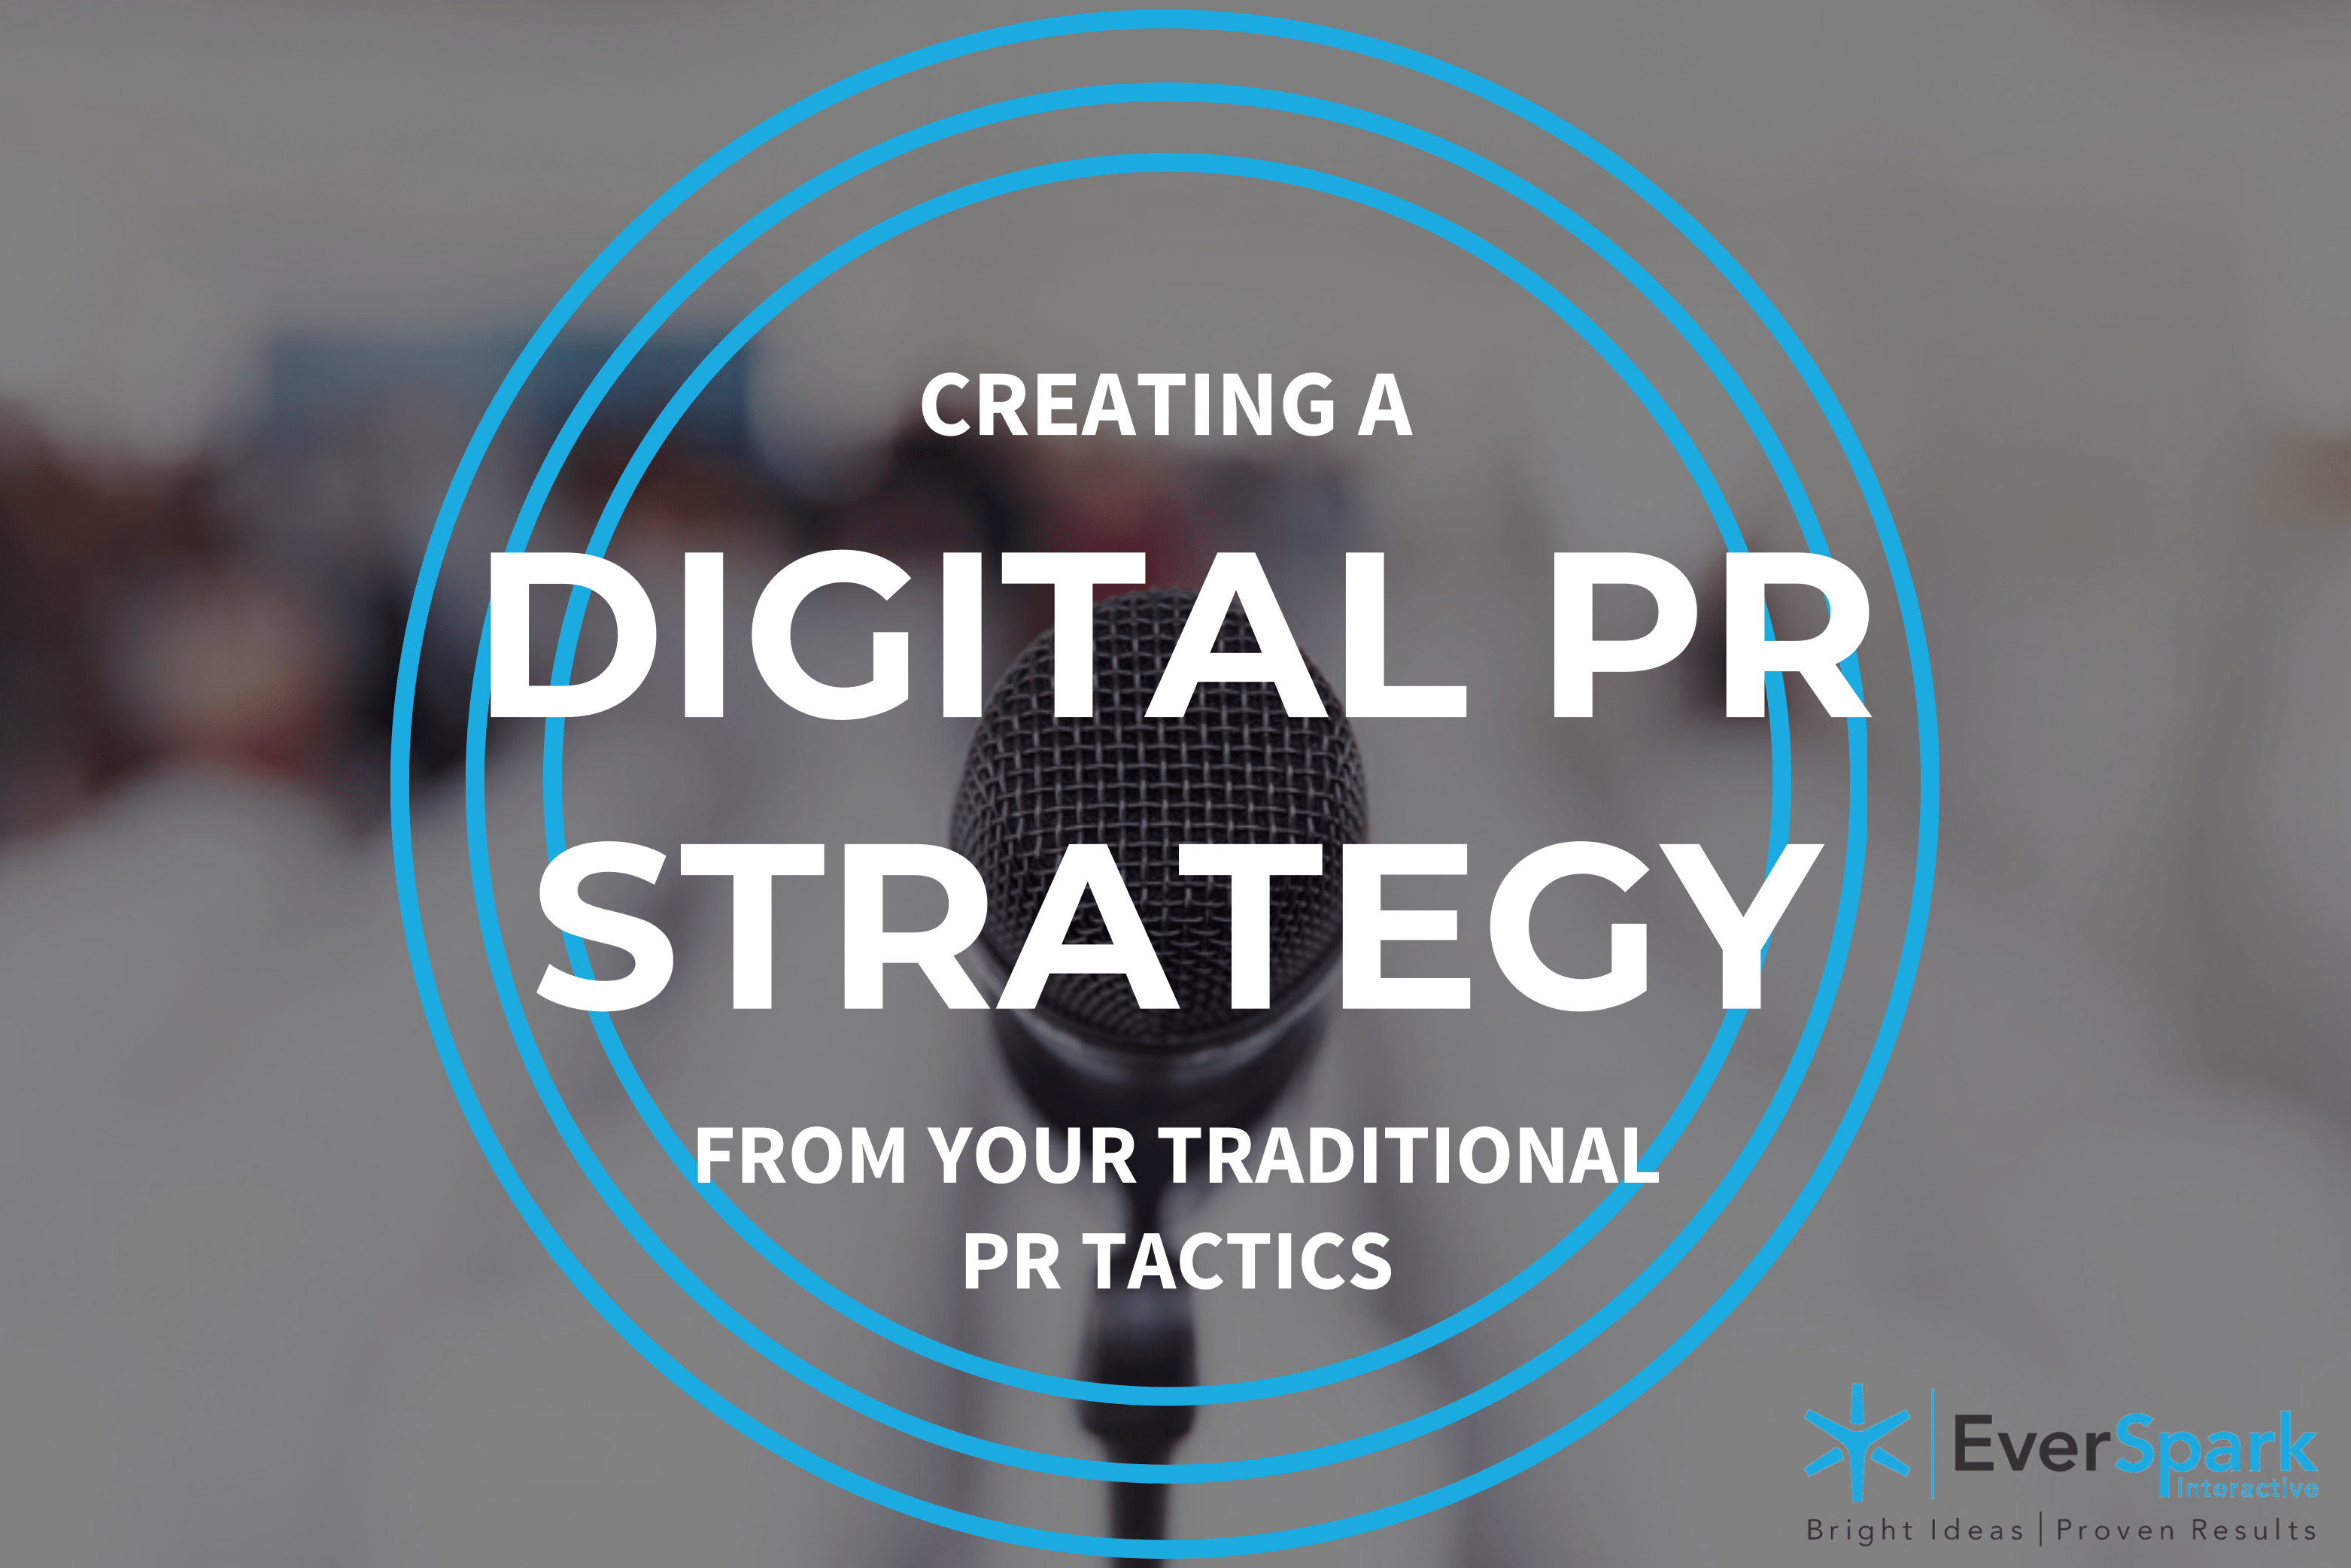 creating-a-digital-pr-strategy-from-your-traditional-pr-tactics